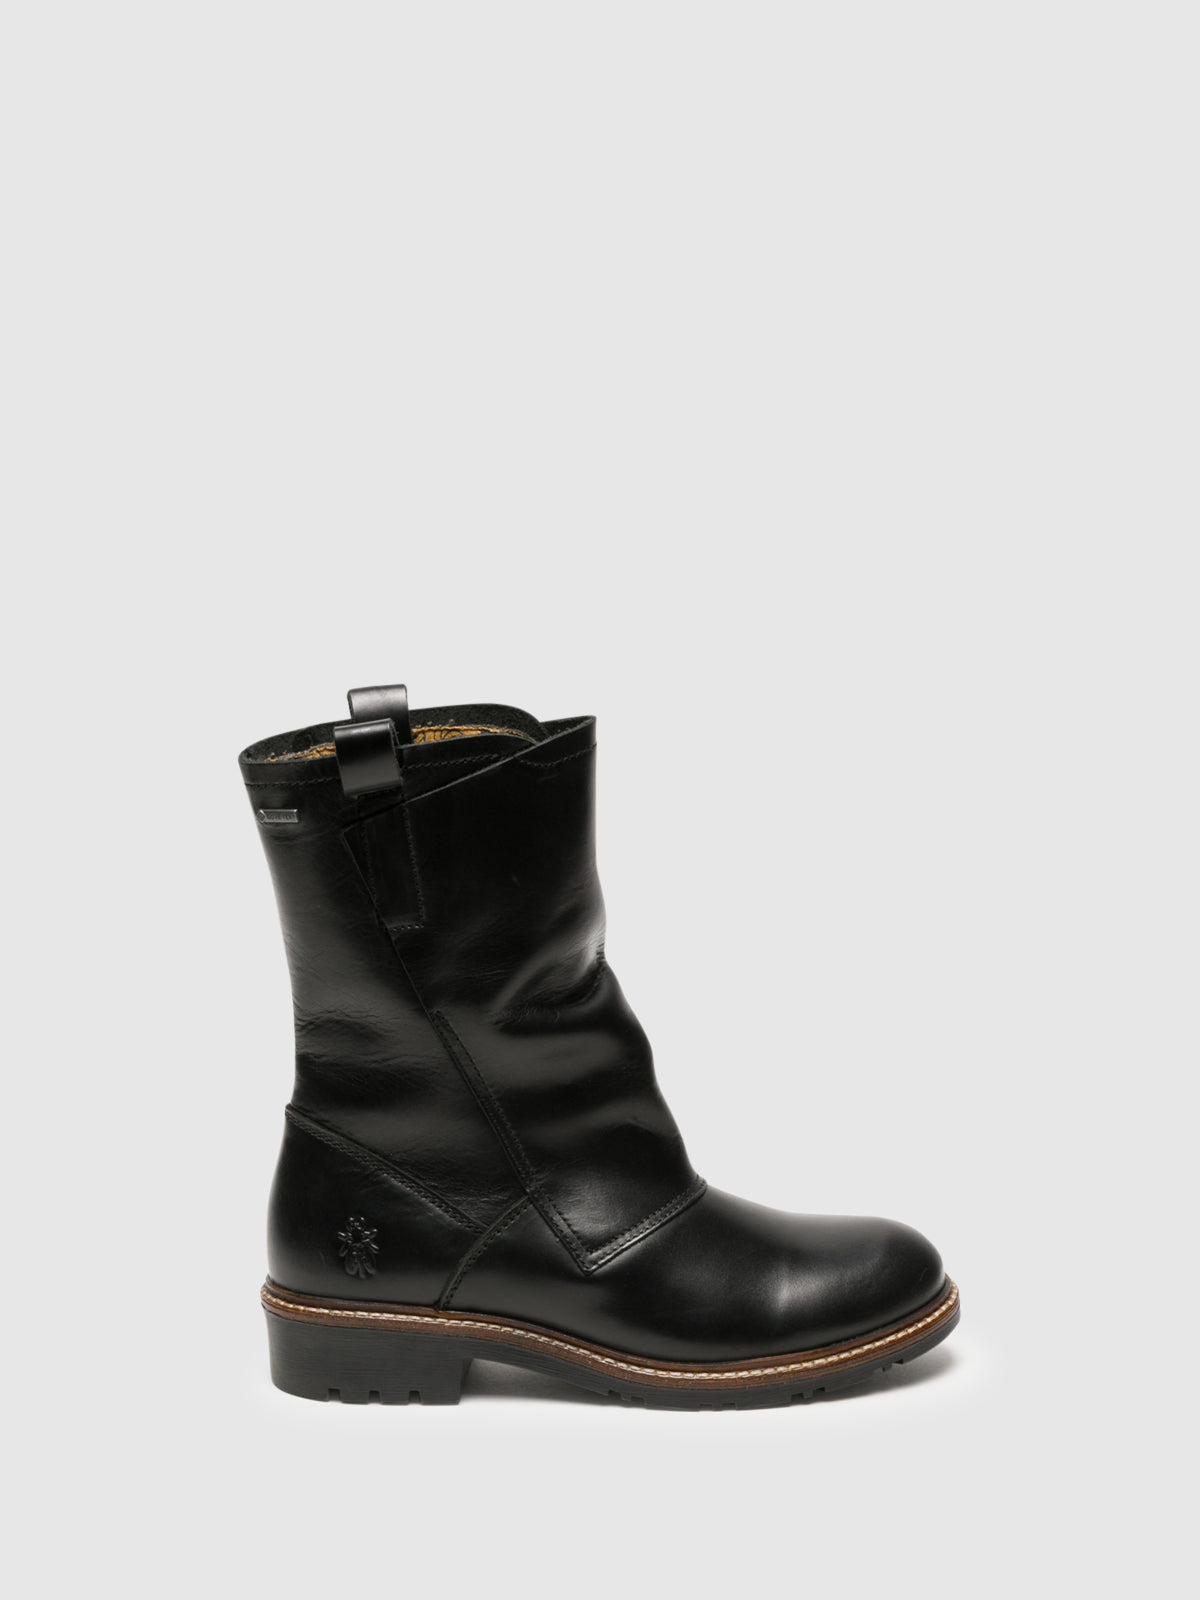 Fly London Botas con Cierree en color Negro